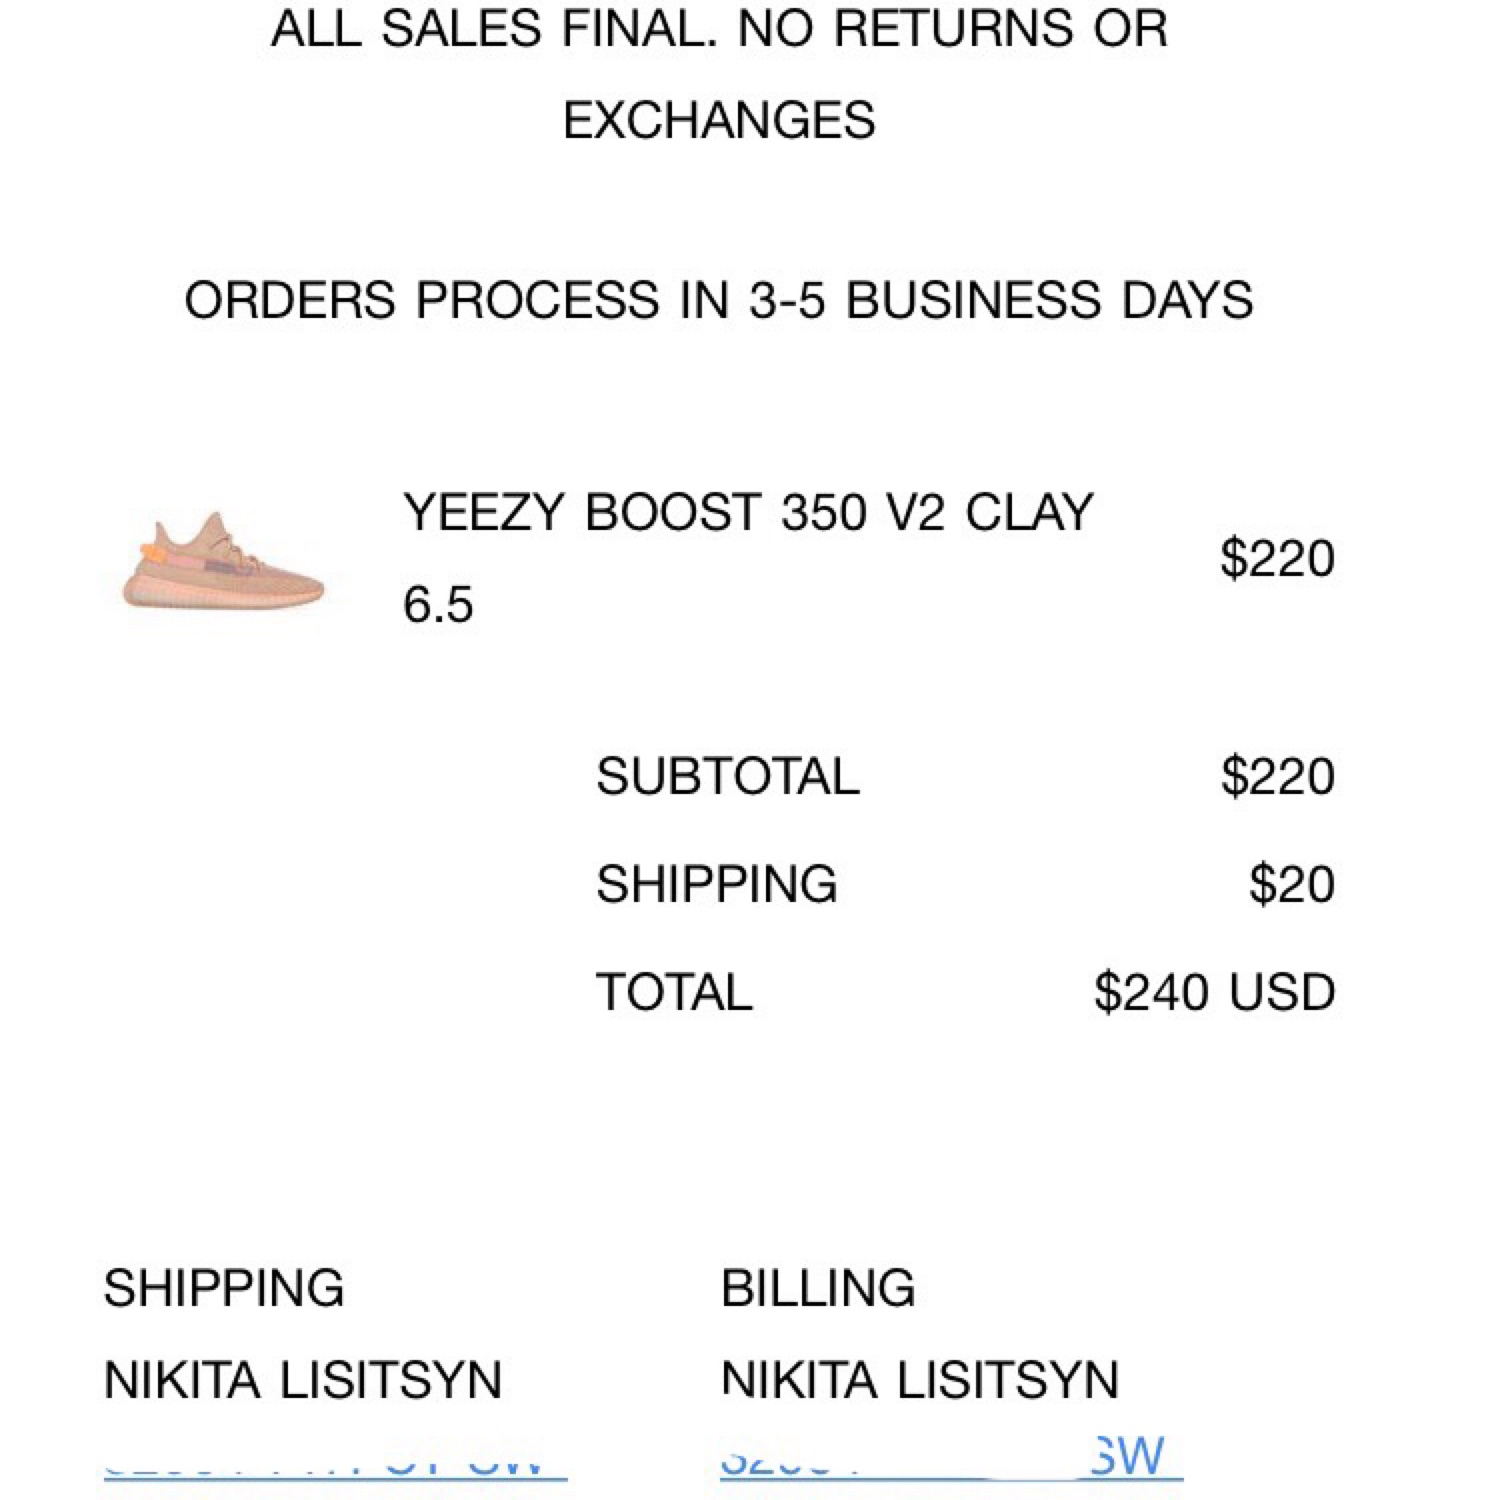 Yeezy Boost 350 V2 Clay Size 6:5